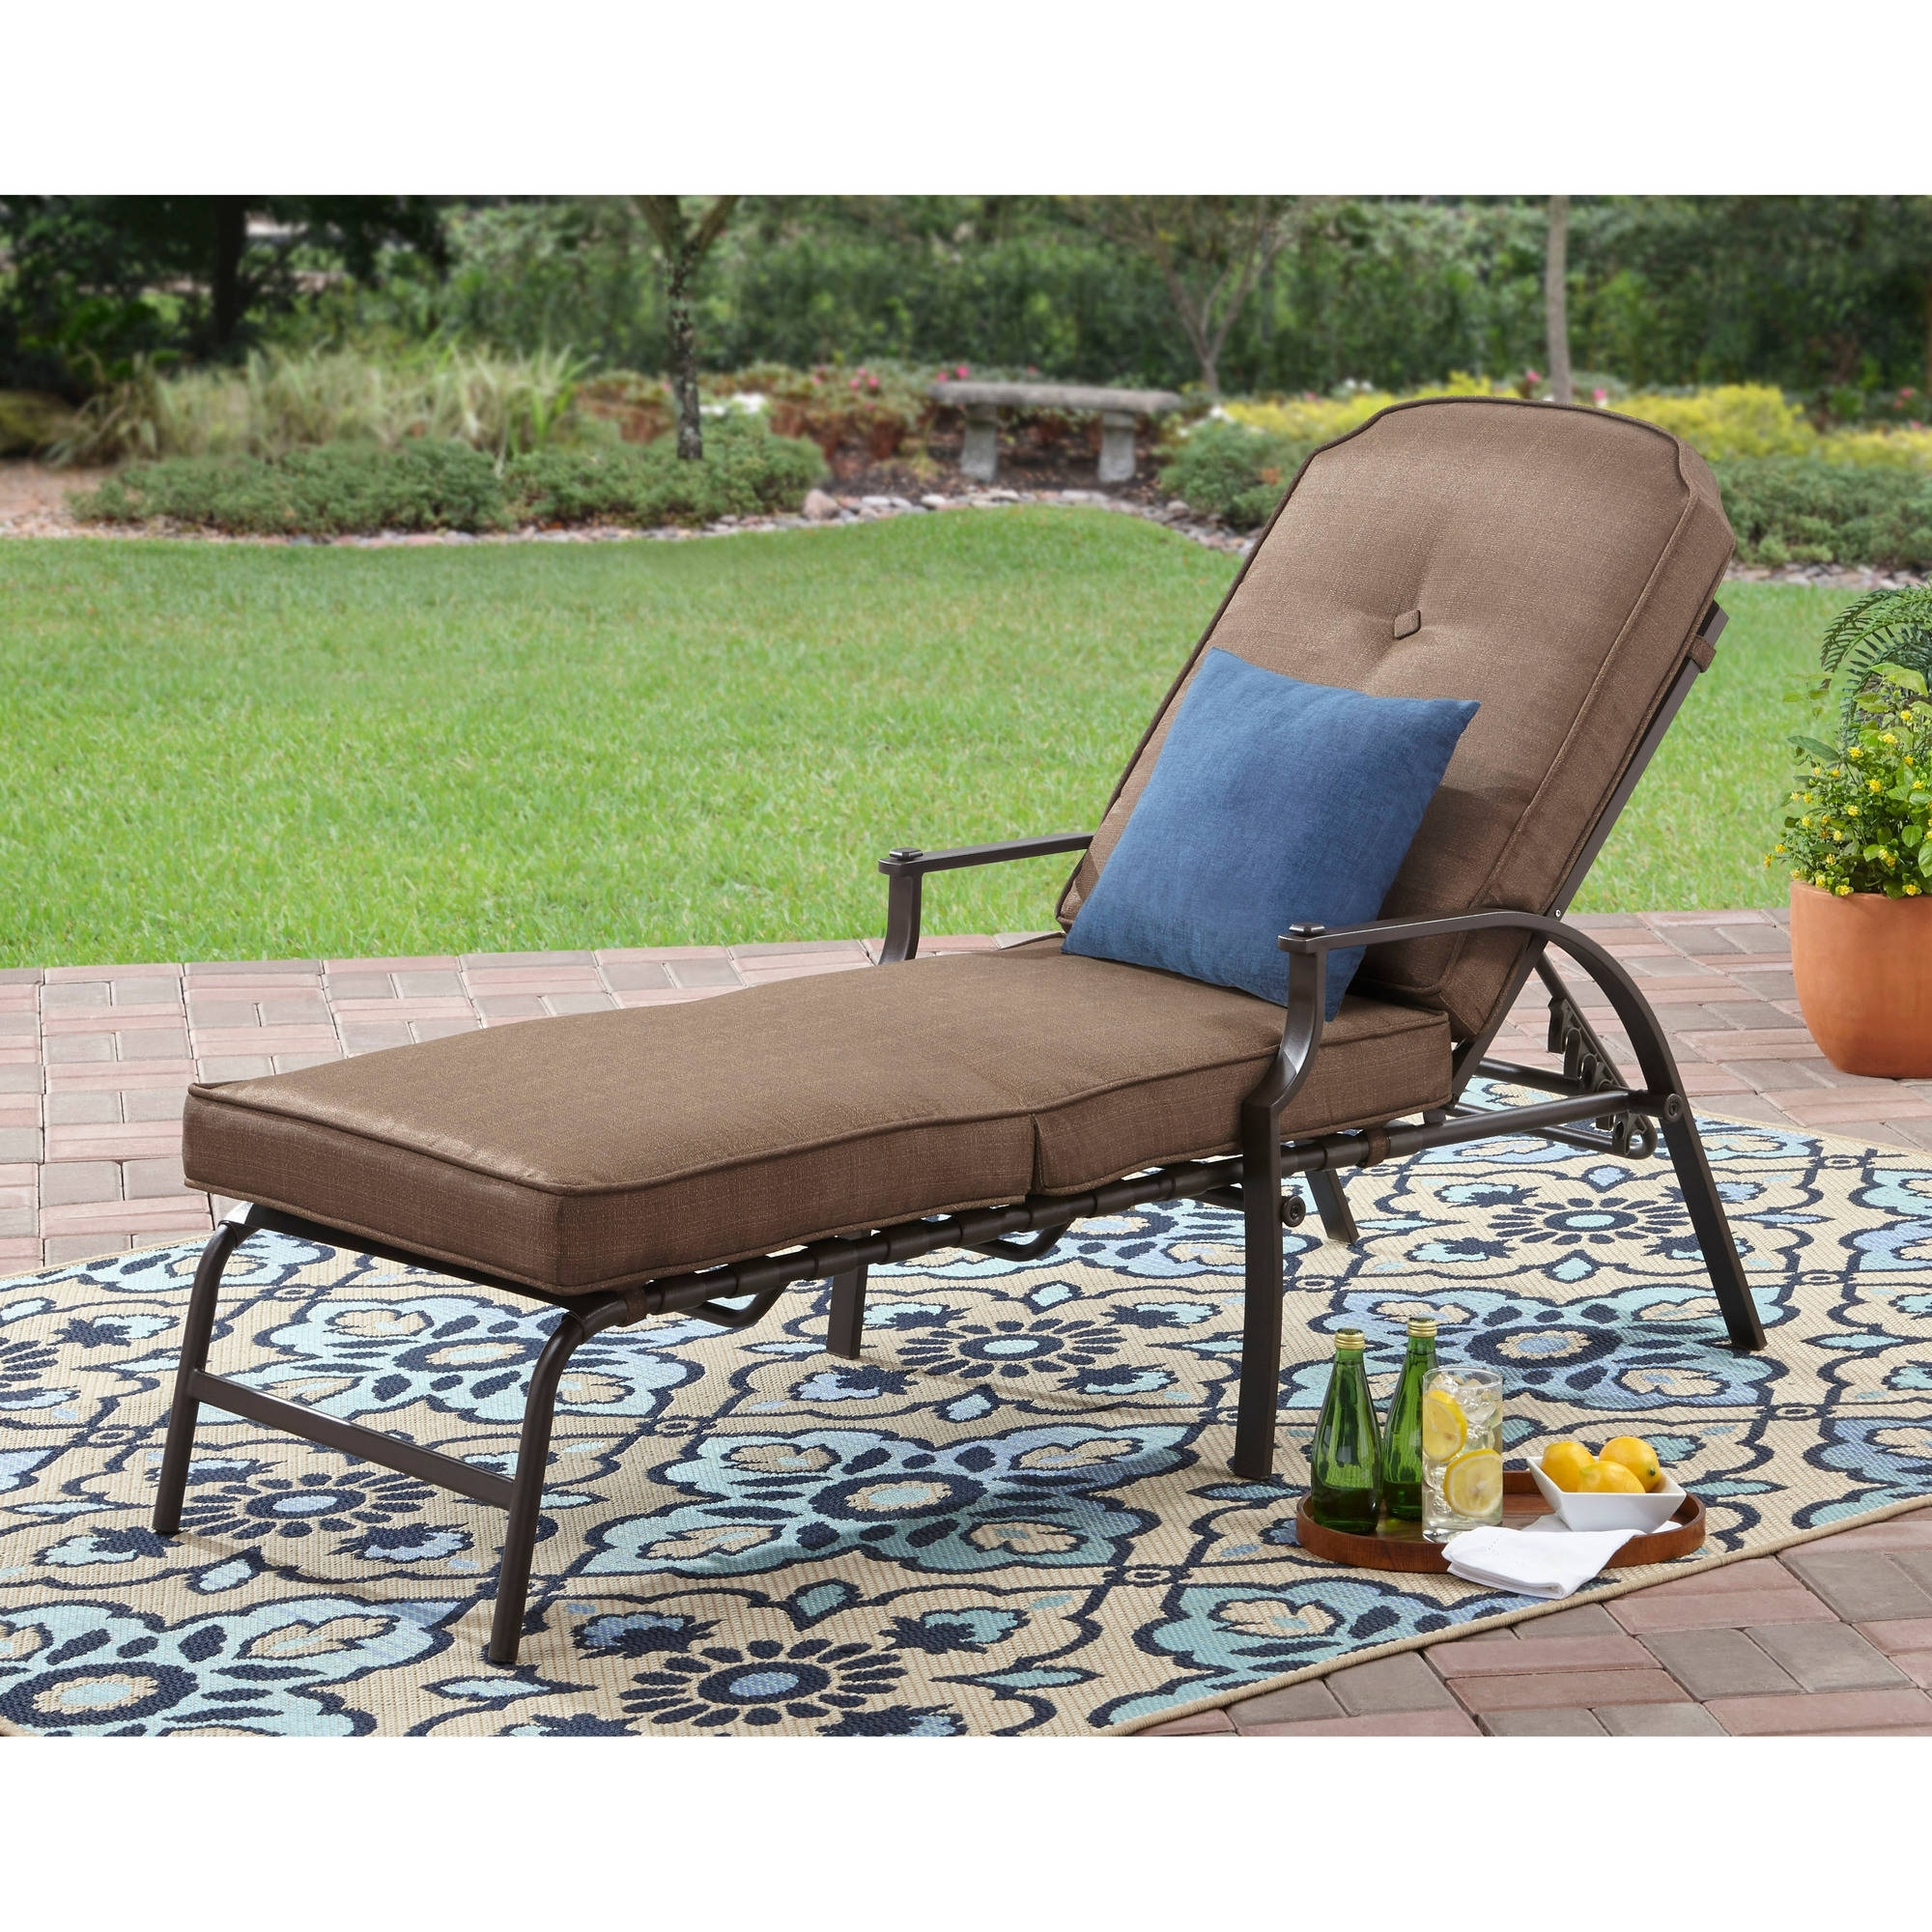 Mainstays Wentworth Chaise Lounge – Walmart With Regard To Trendy Chaise Lounge Chairs At Walmart (View 8 of 15)